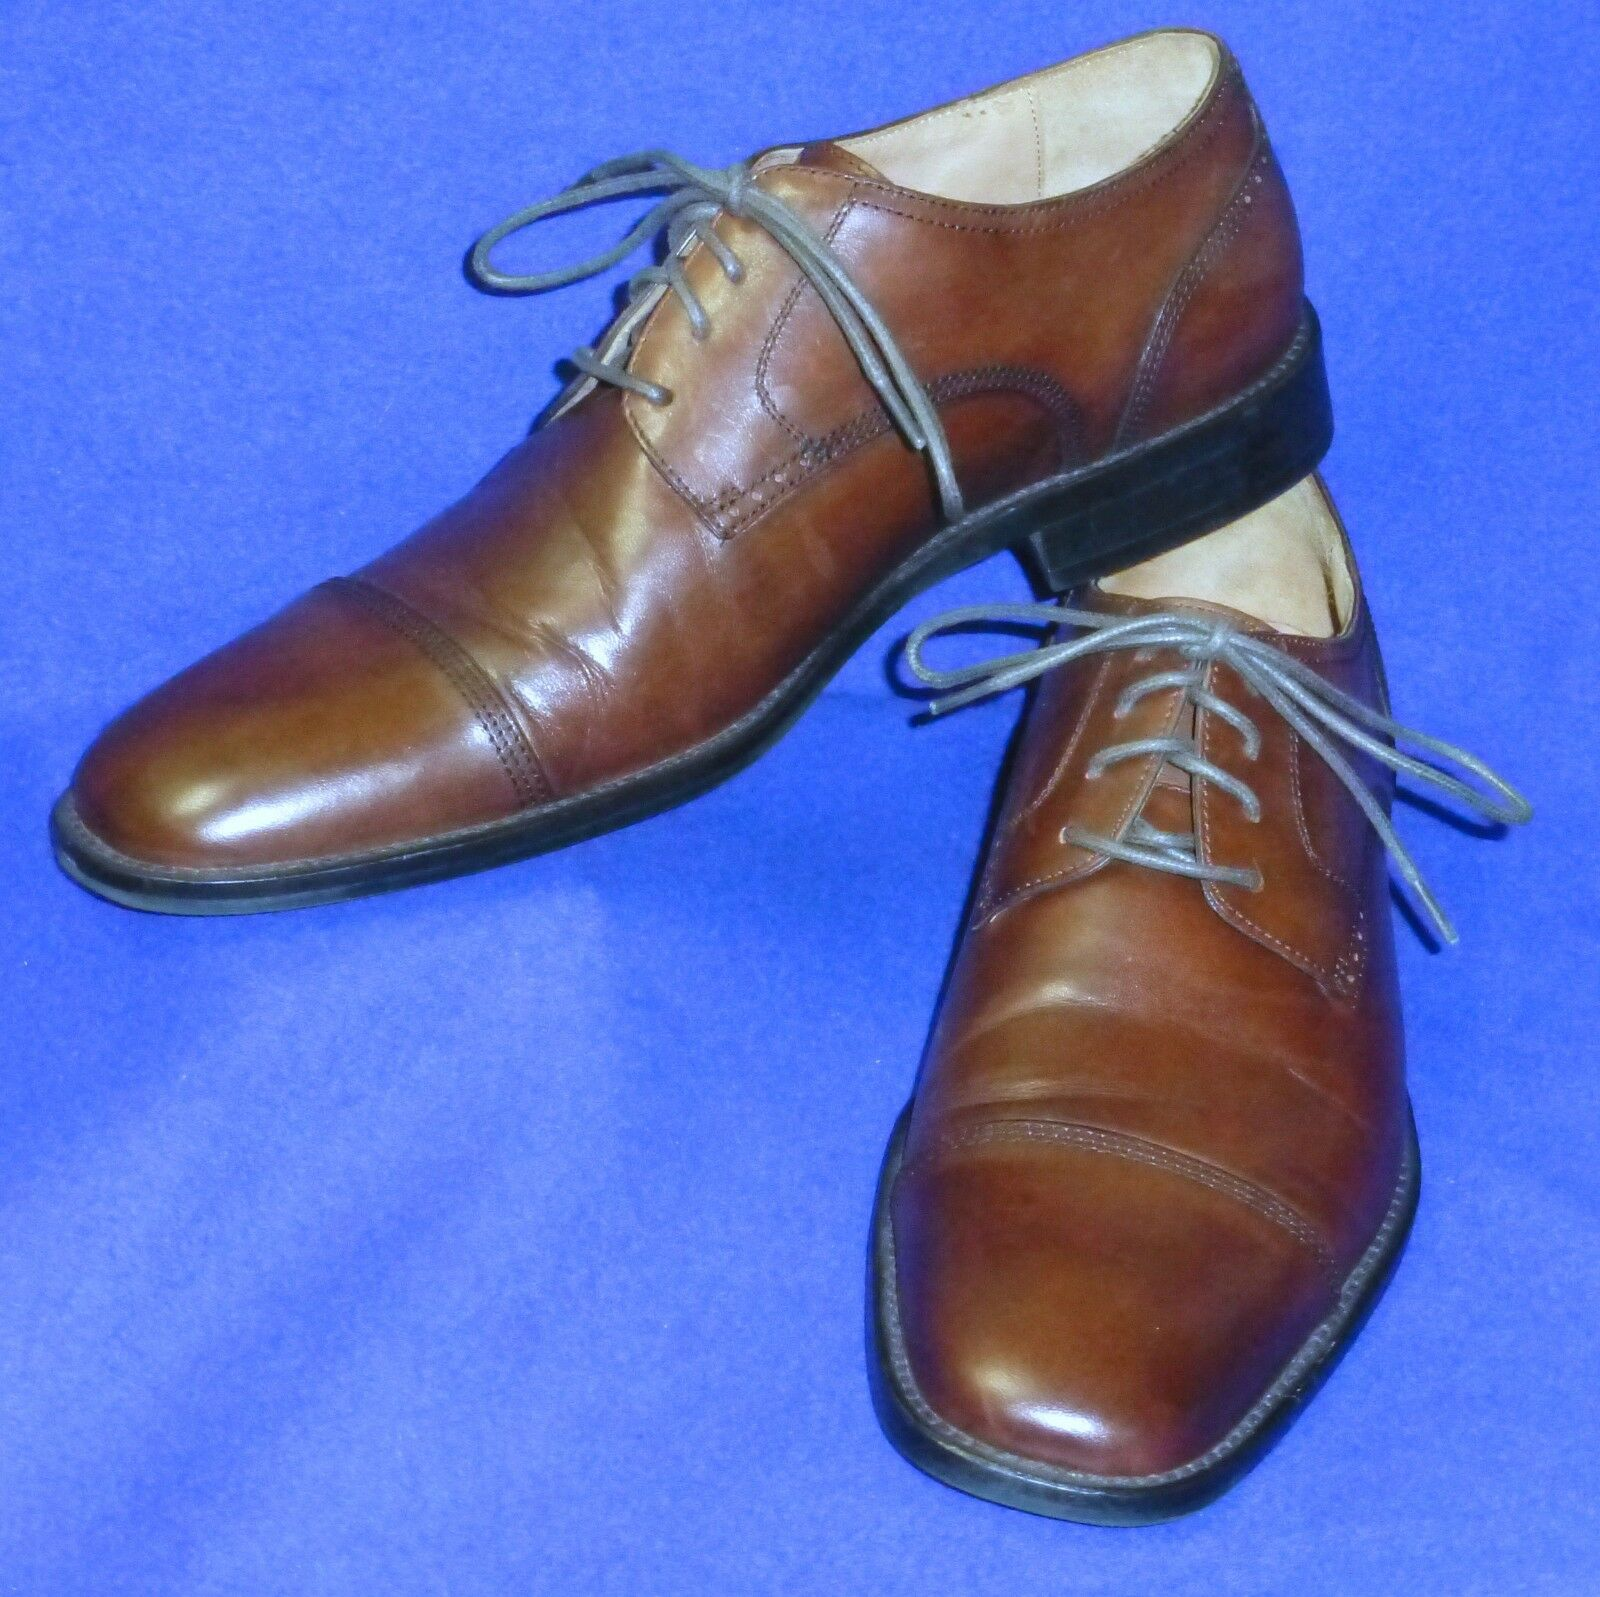 MINTY 8.5 M JOHNSTON TOE MURPHY KNOWLAND BROWN CAP TOE JOHNSTON MENS SHOES OXFORD 20-173 089f30